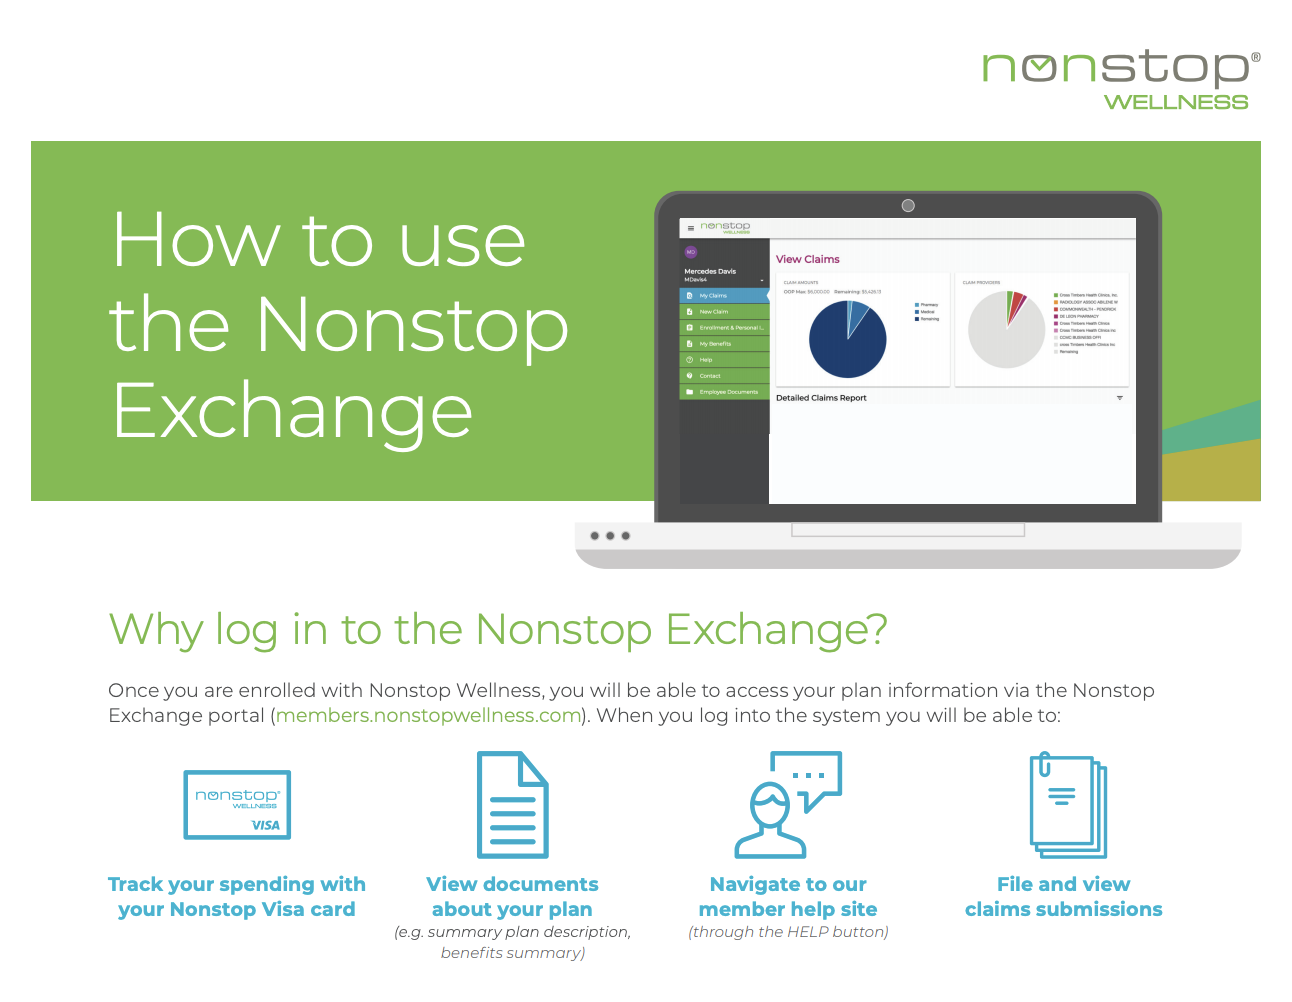 How to Use the Nonstop Exchange